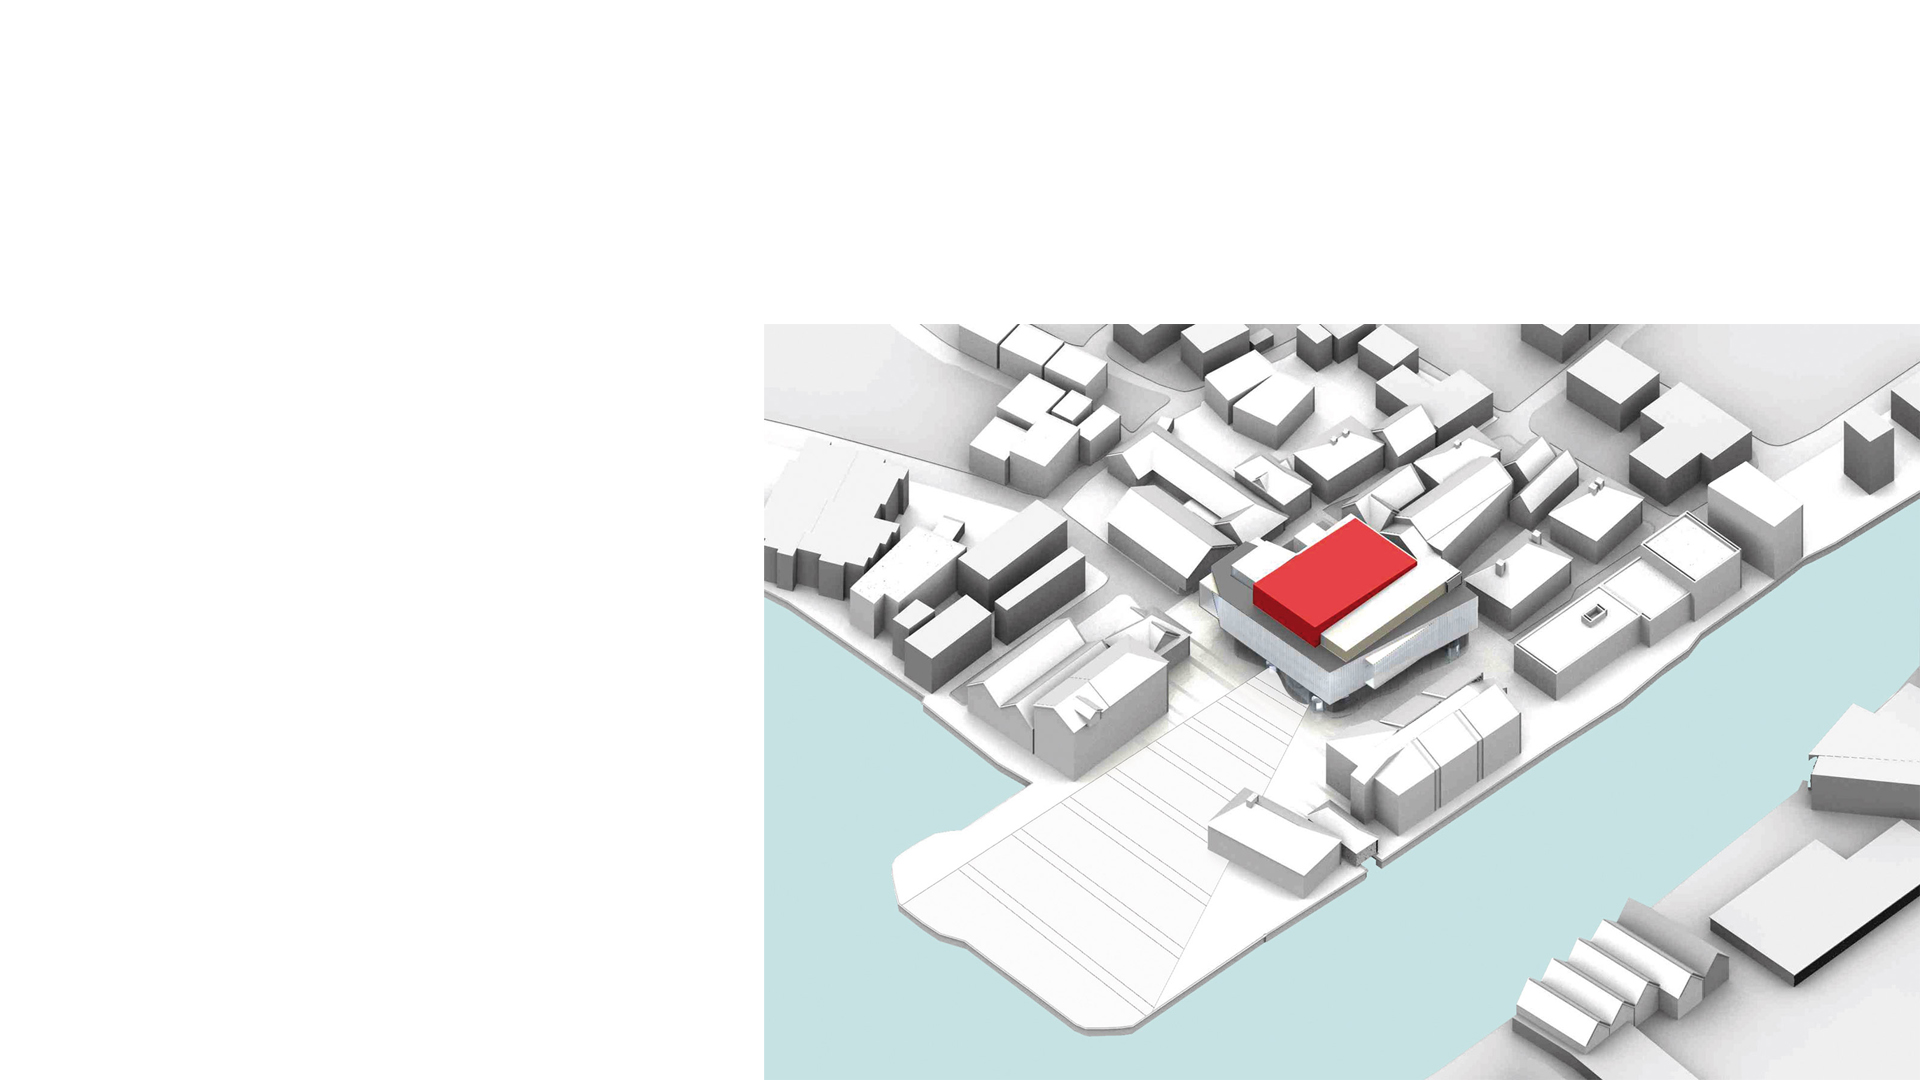 3D rendering showing the aerial view of the proposed Flekkefjord Kulturhus, Norway, showing the project in context with the town's dockside.